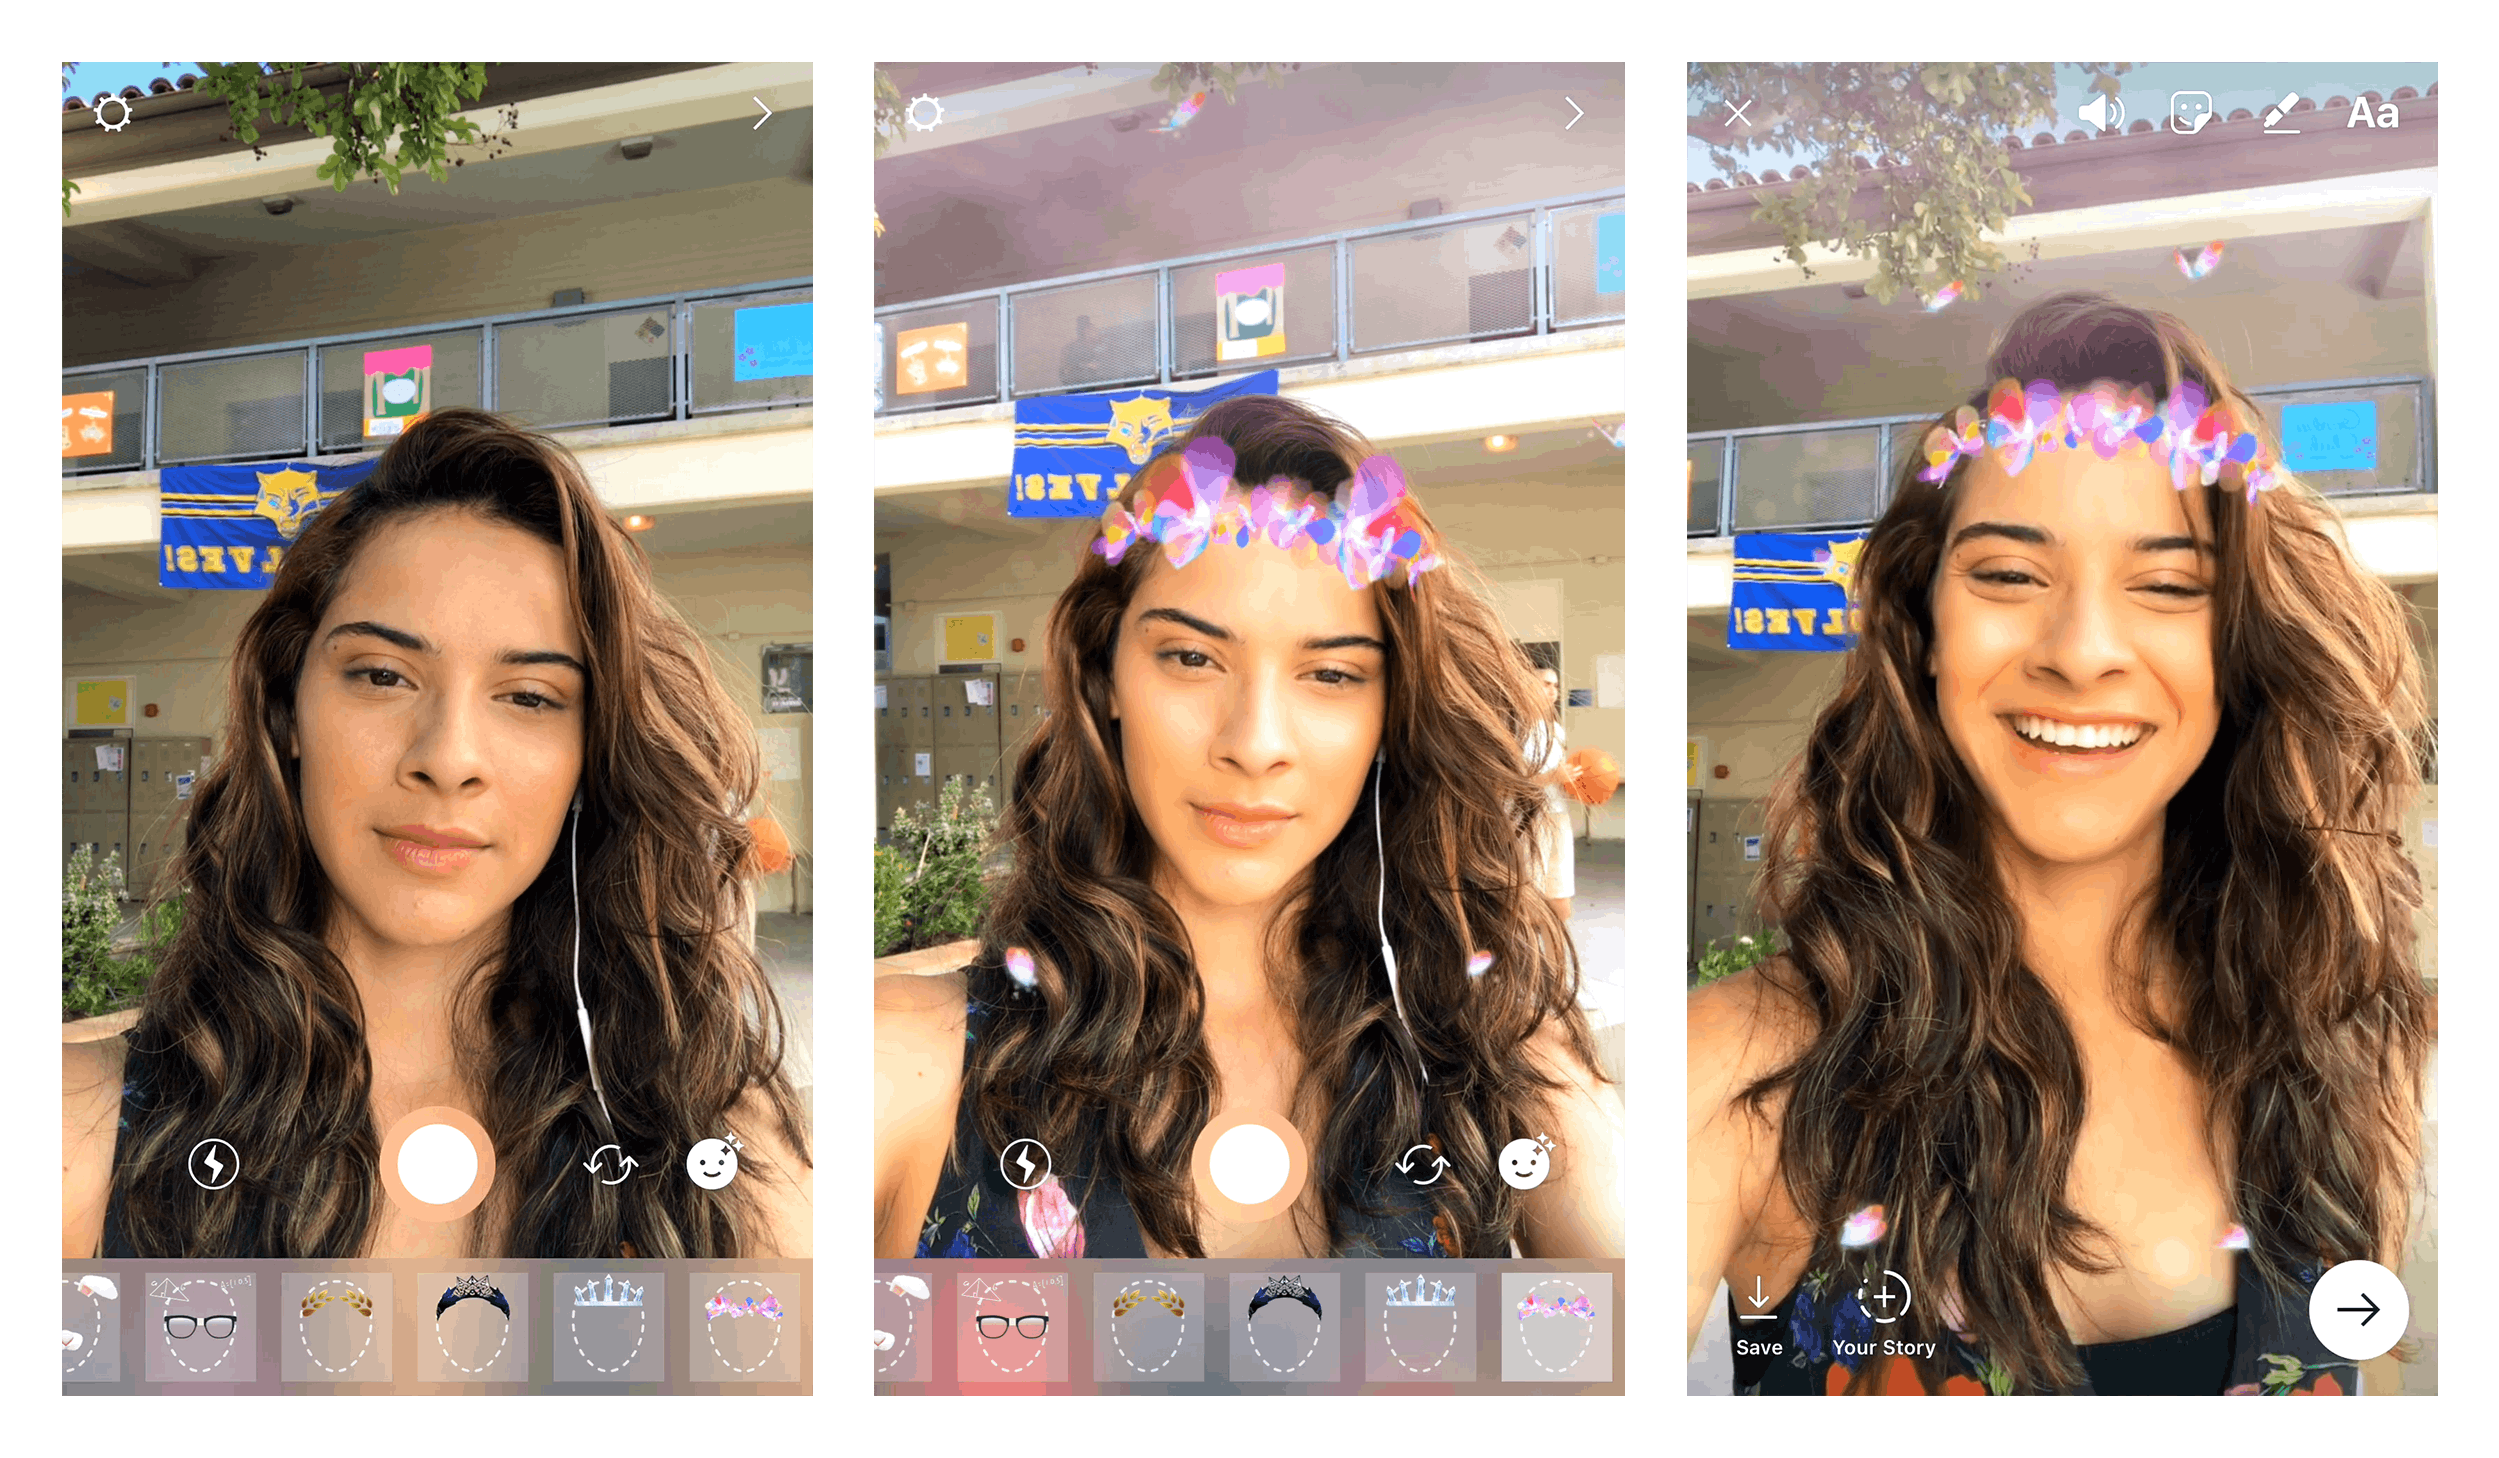 Instagram adds face filters to Stories